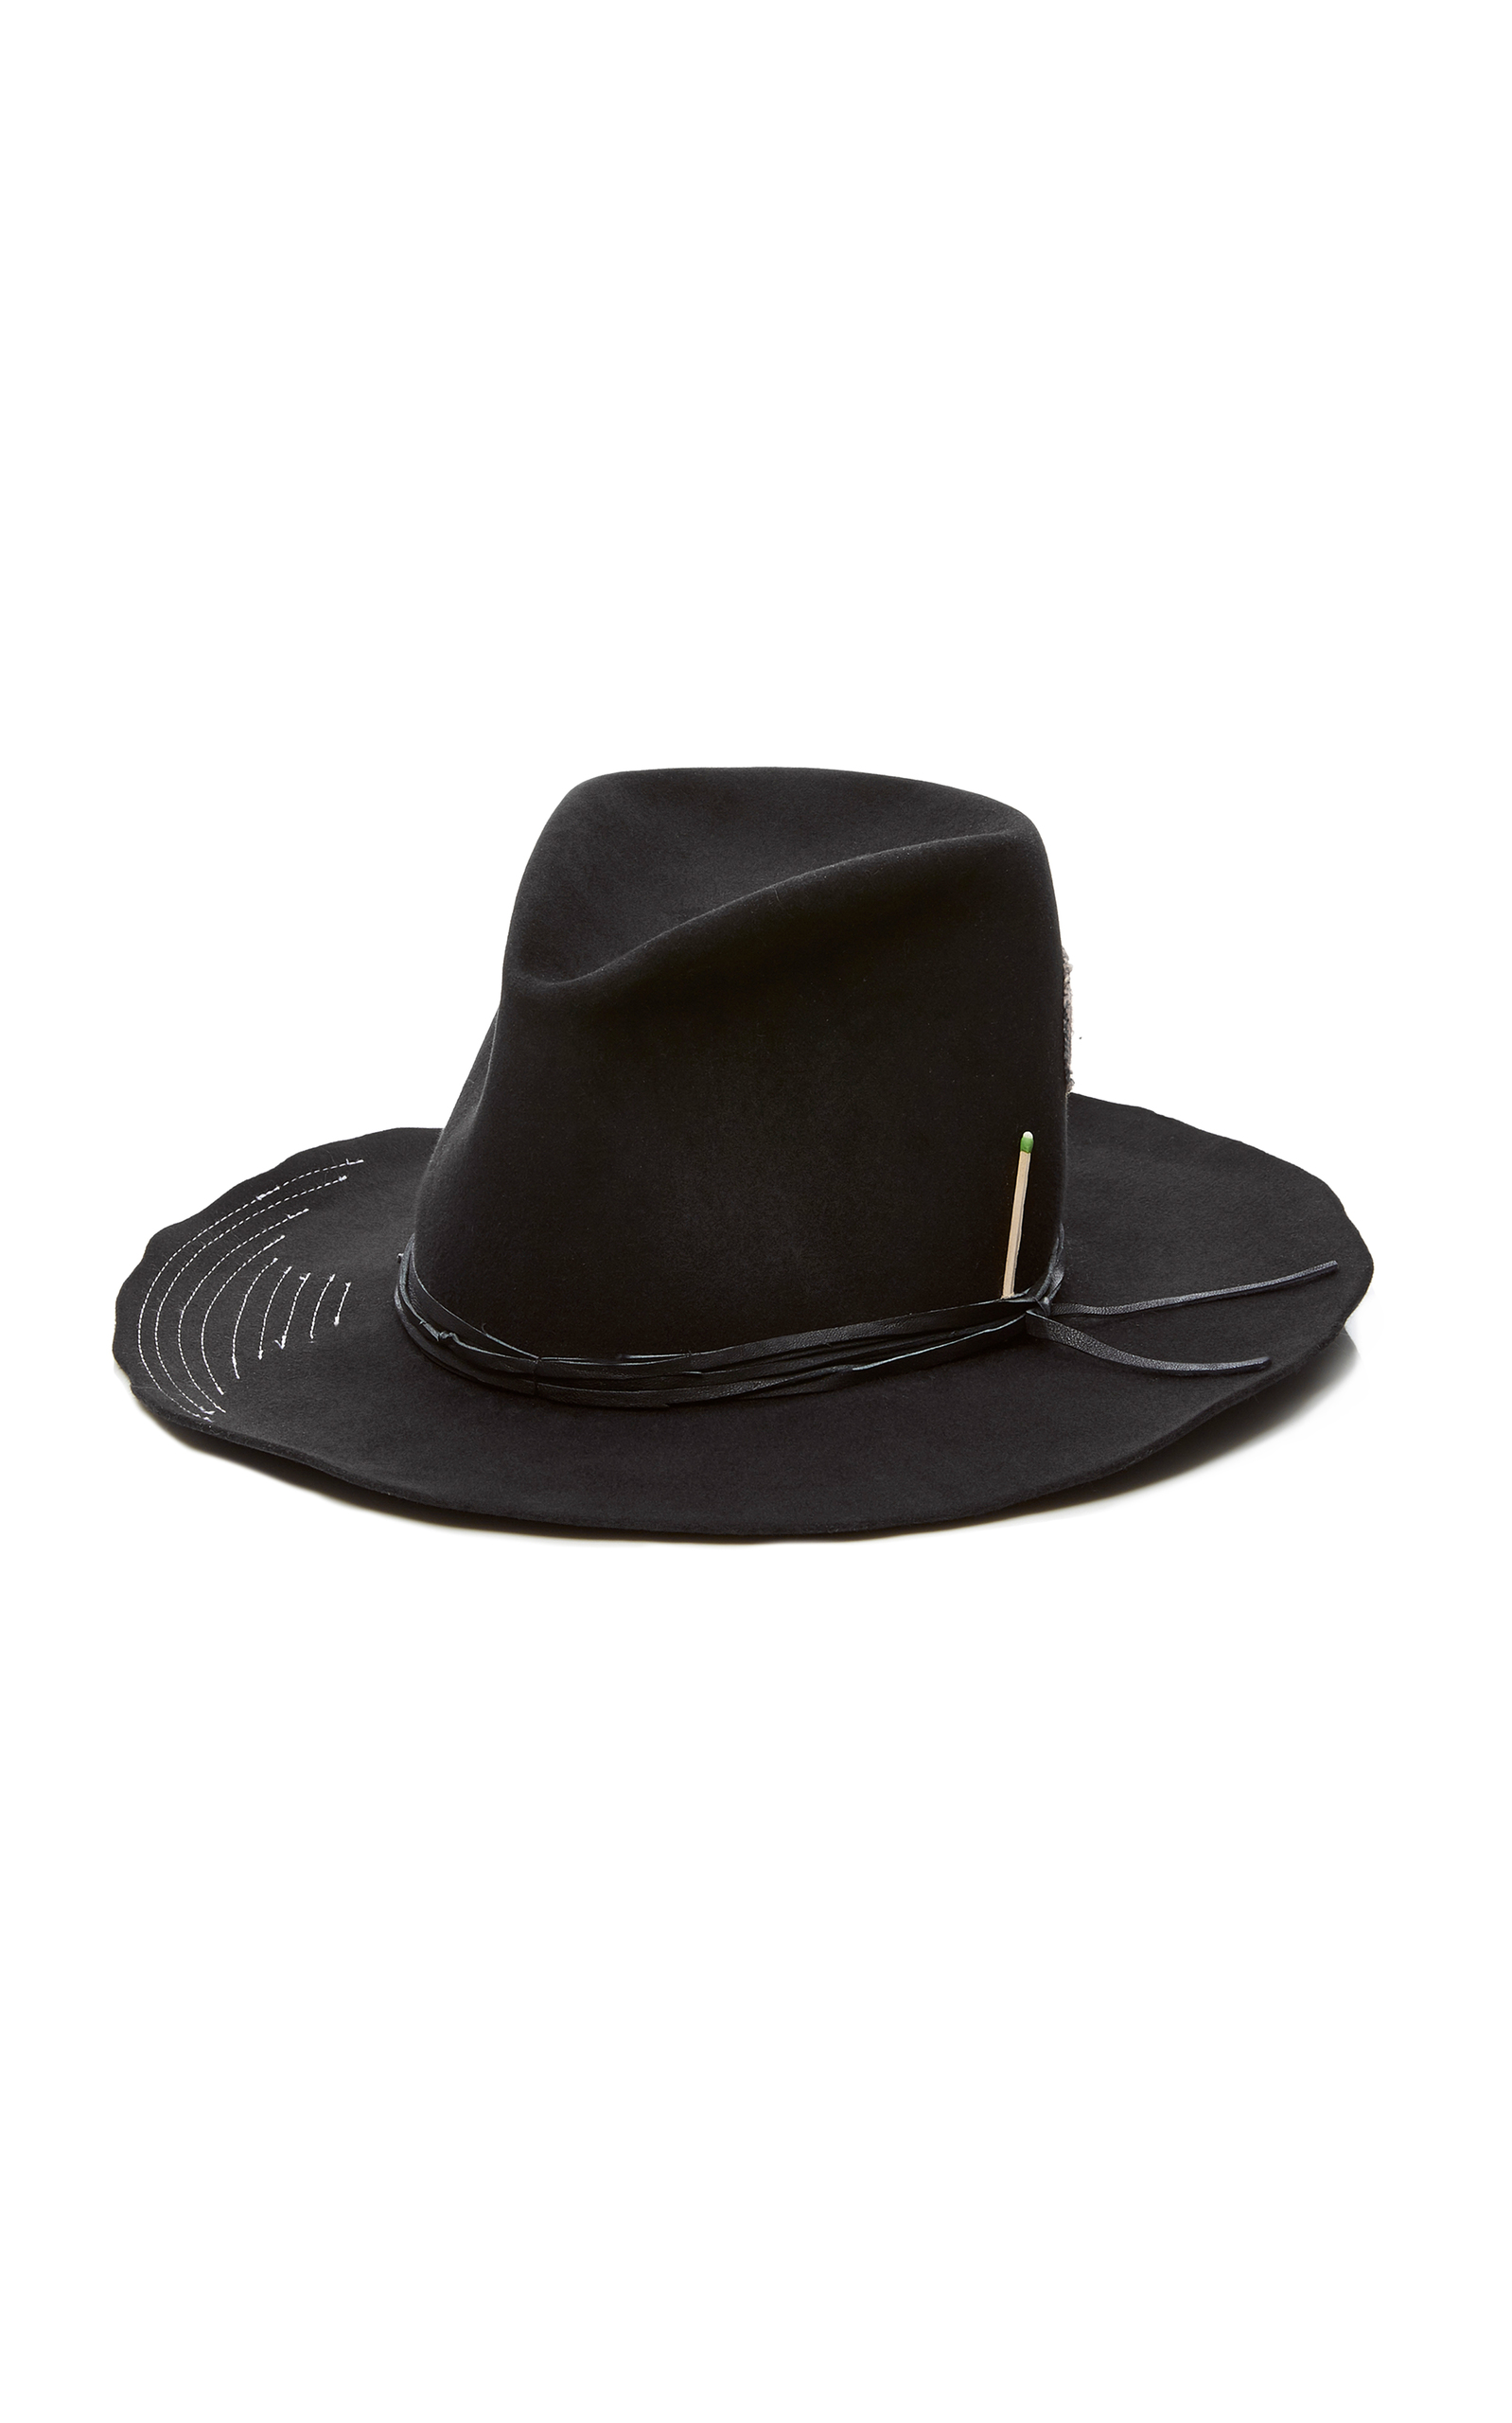 Tequila Sunset Felt Fedora Nick Fouquet